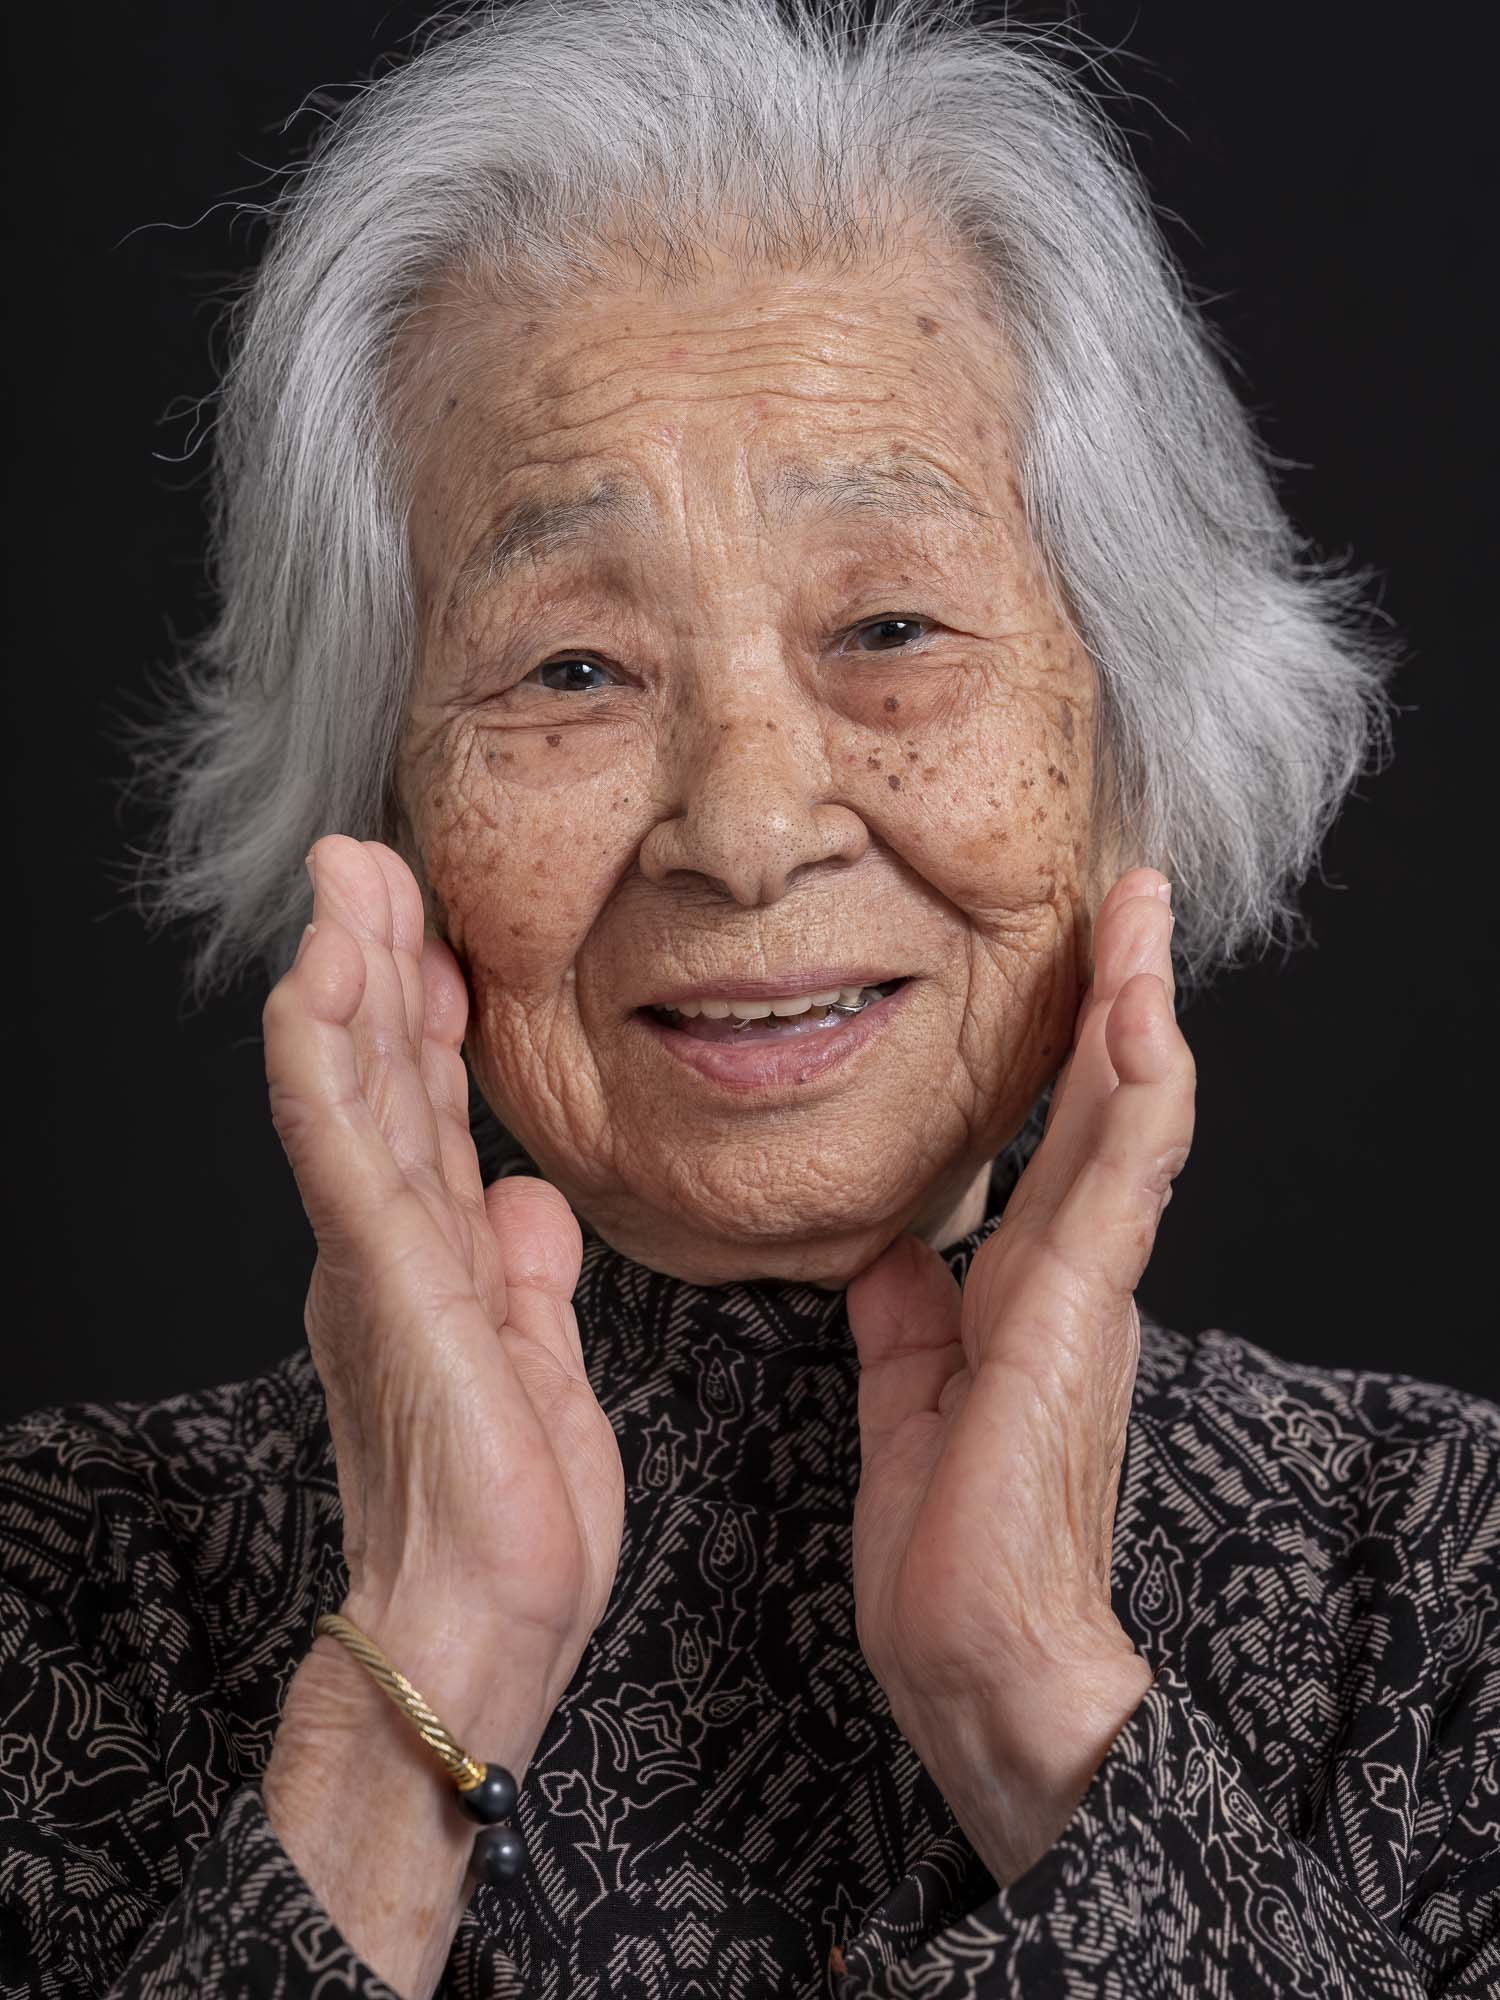 okinawa longevity centenarian people japan portrait photography project health